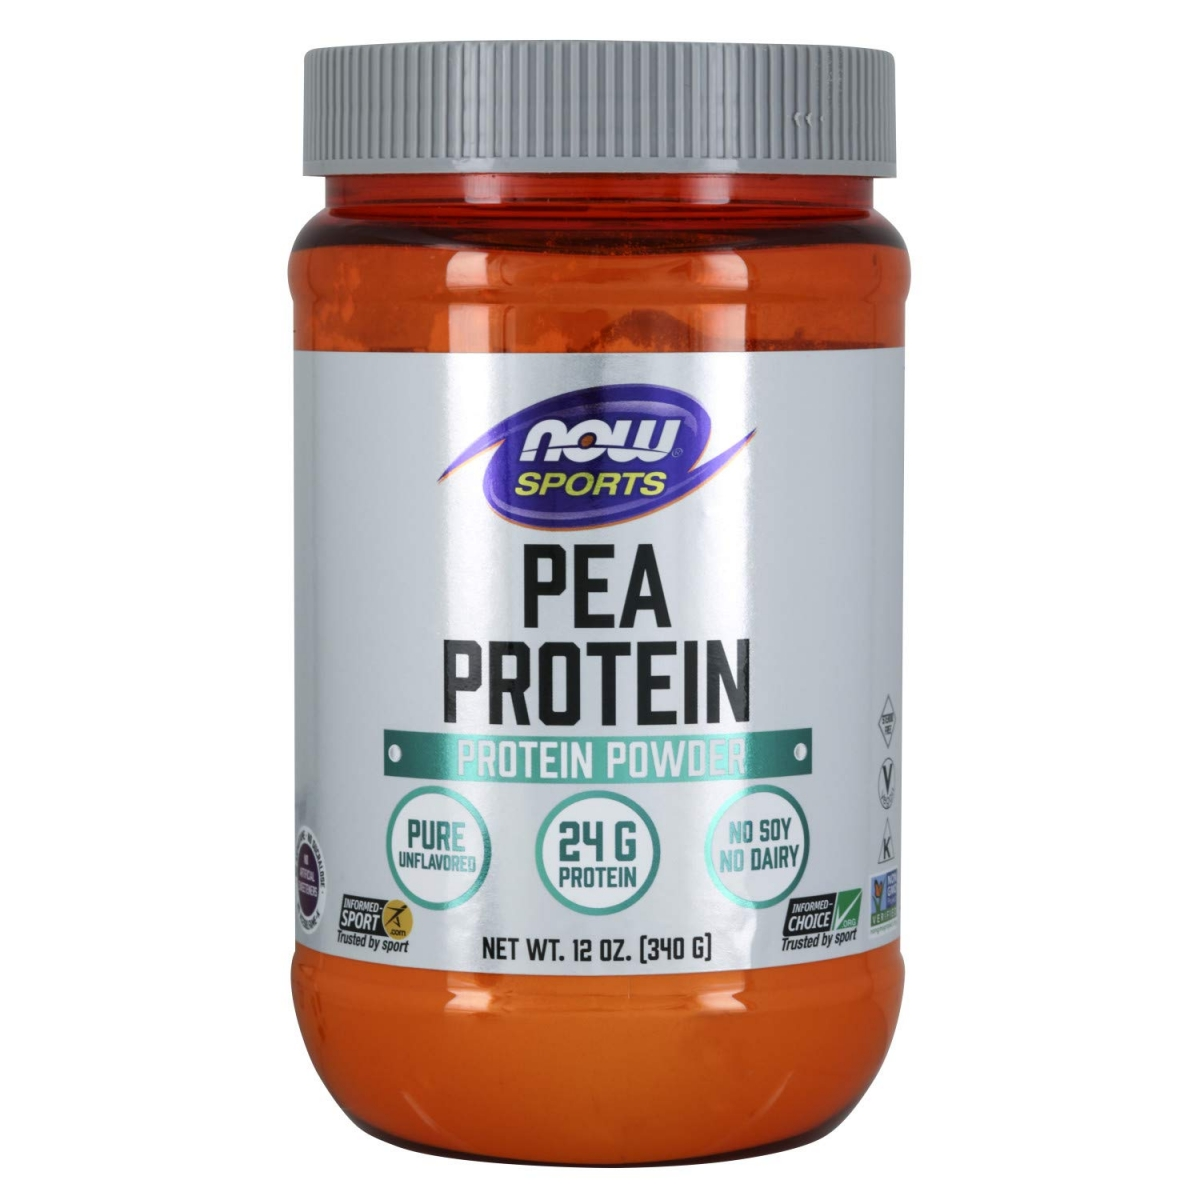 NOW Pea Protein 340g